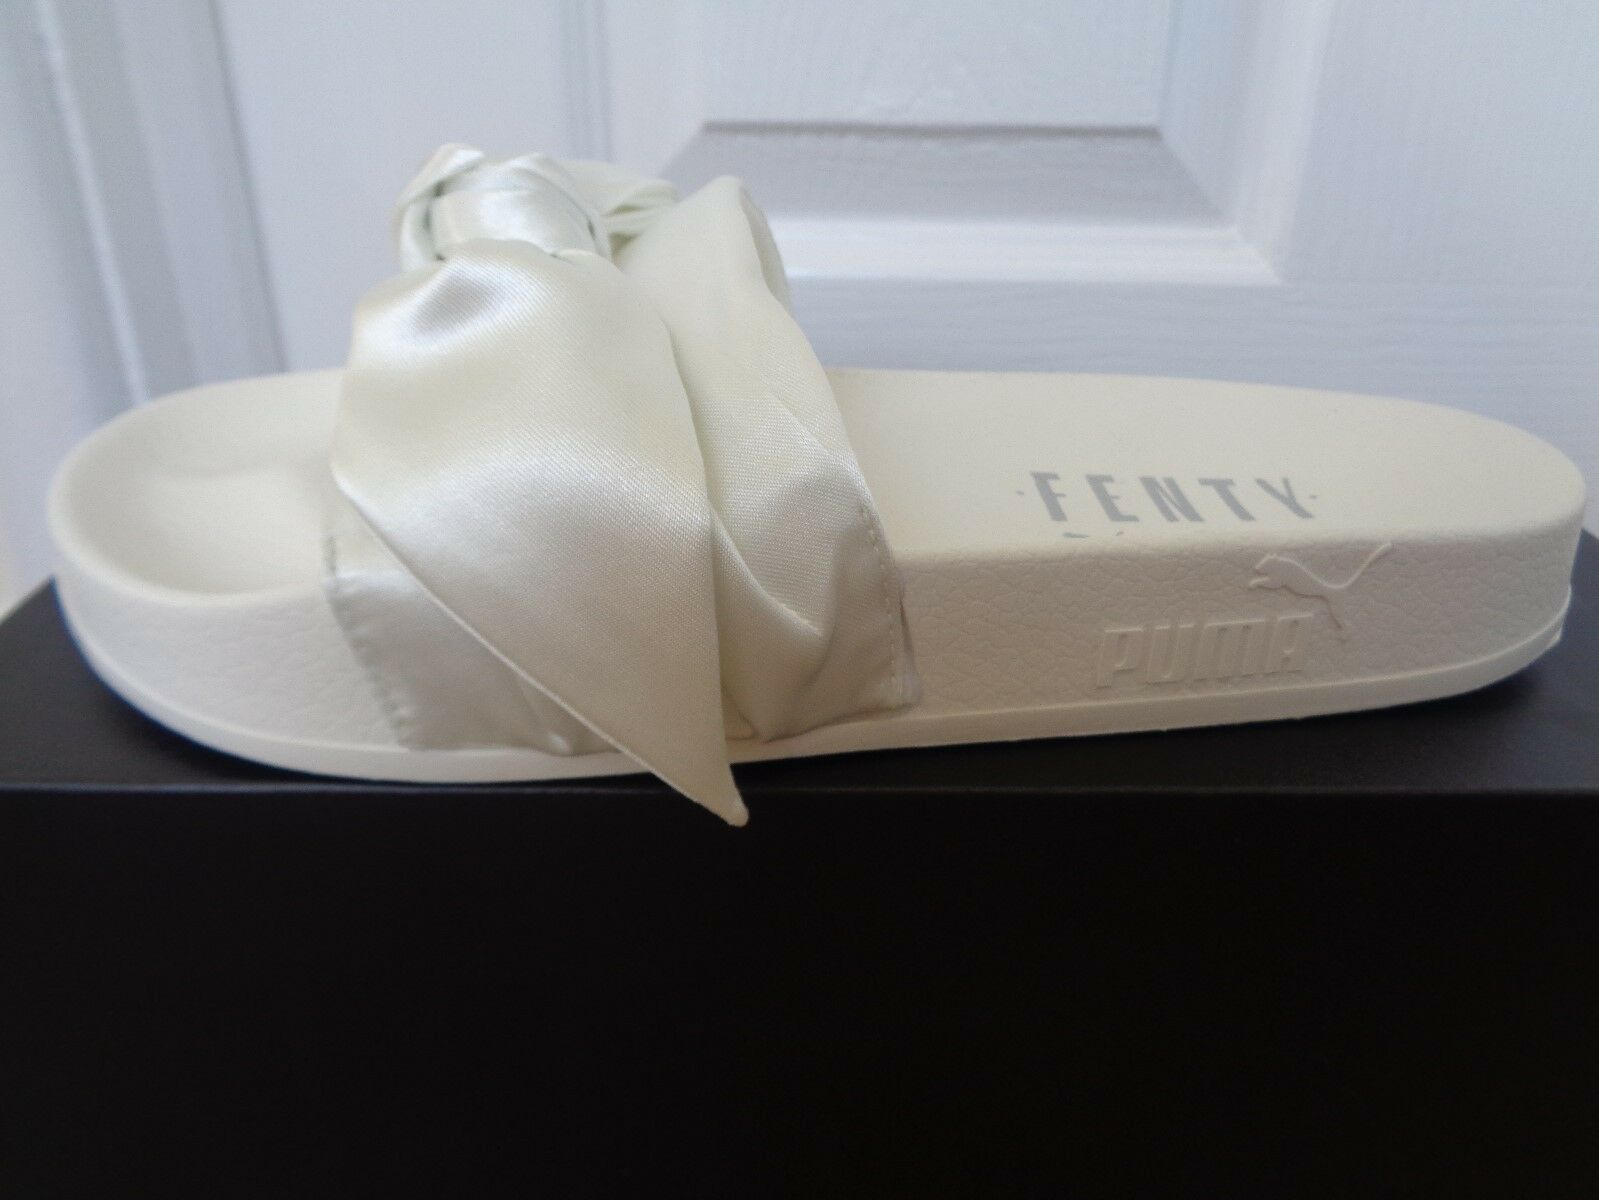 Puma Fenty by Rihanna wmns bow slide shoes 365774 02 uk 5 eu 38 us 7.5 NEW+BOX